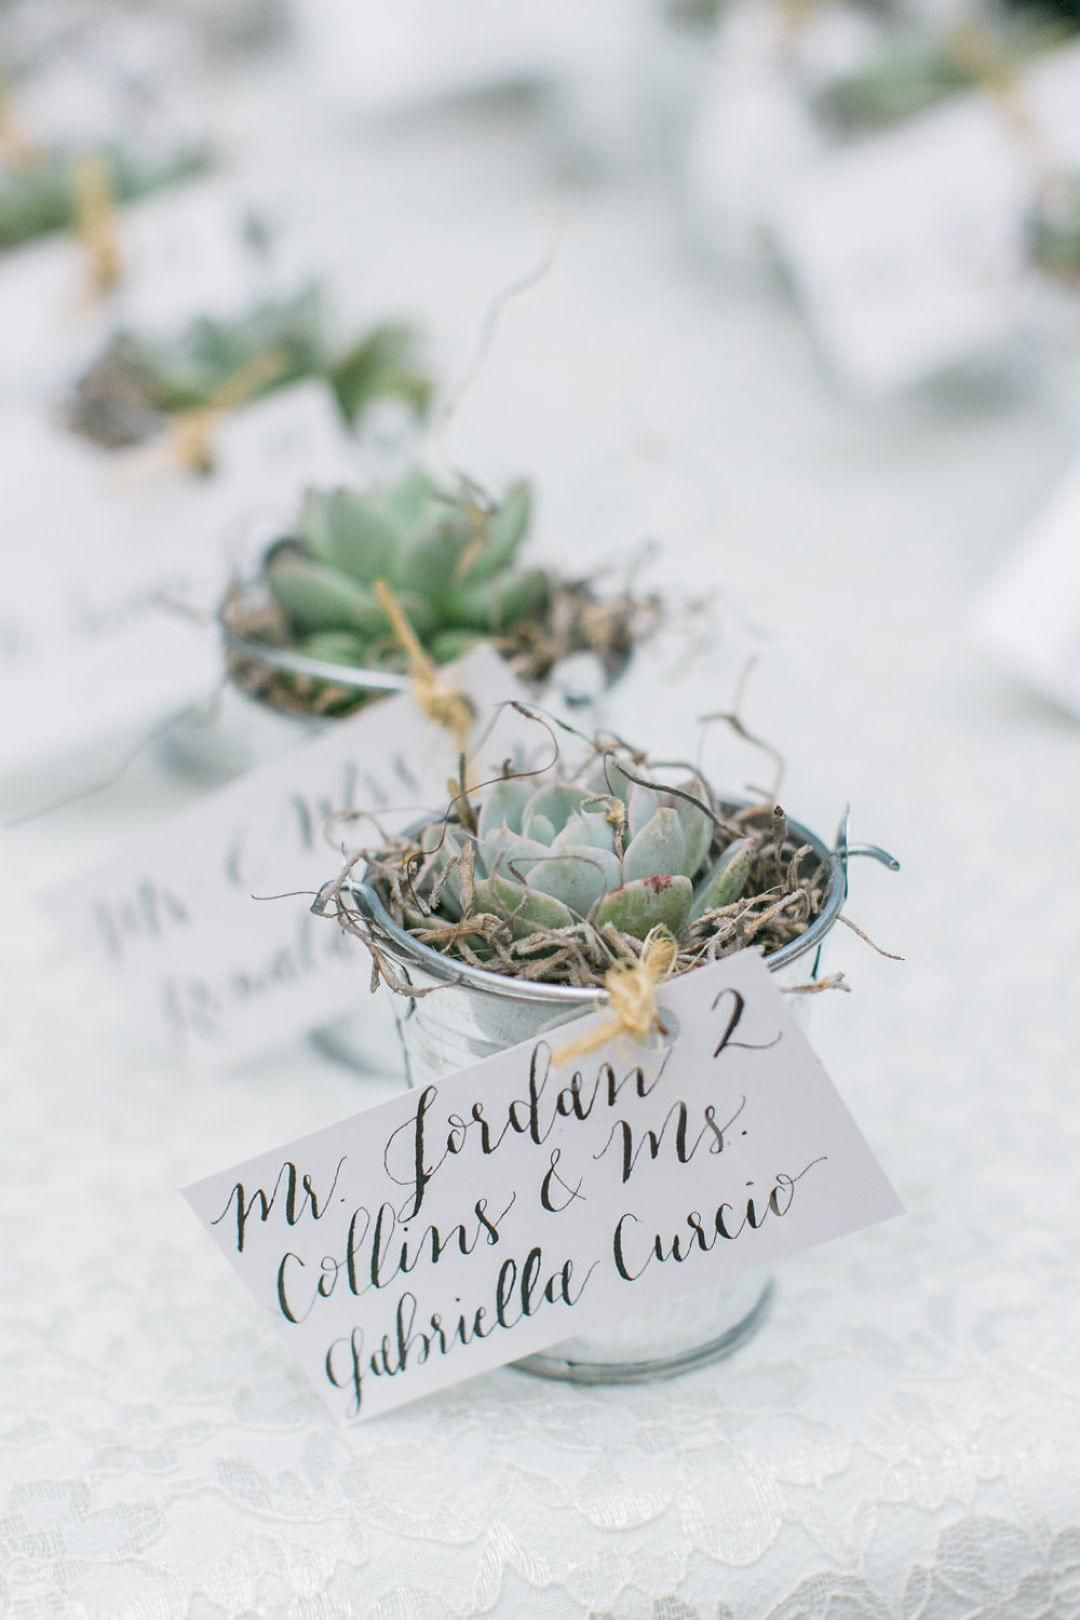 The Smarter Way to Wed | Wedding seating display, Wedding seating ...